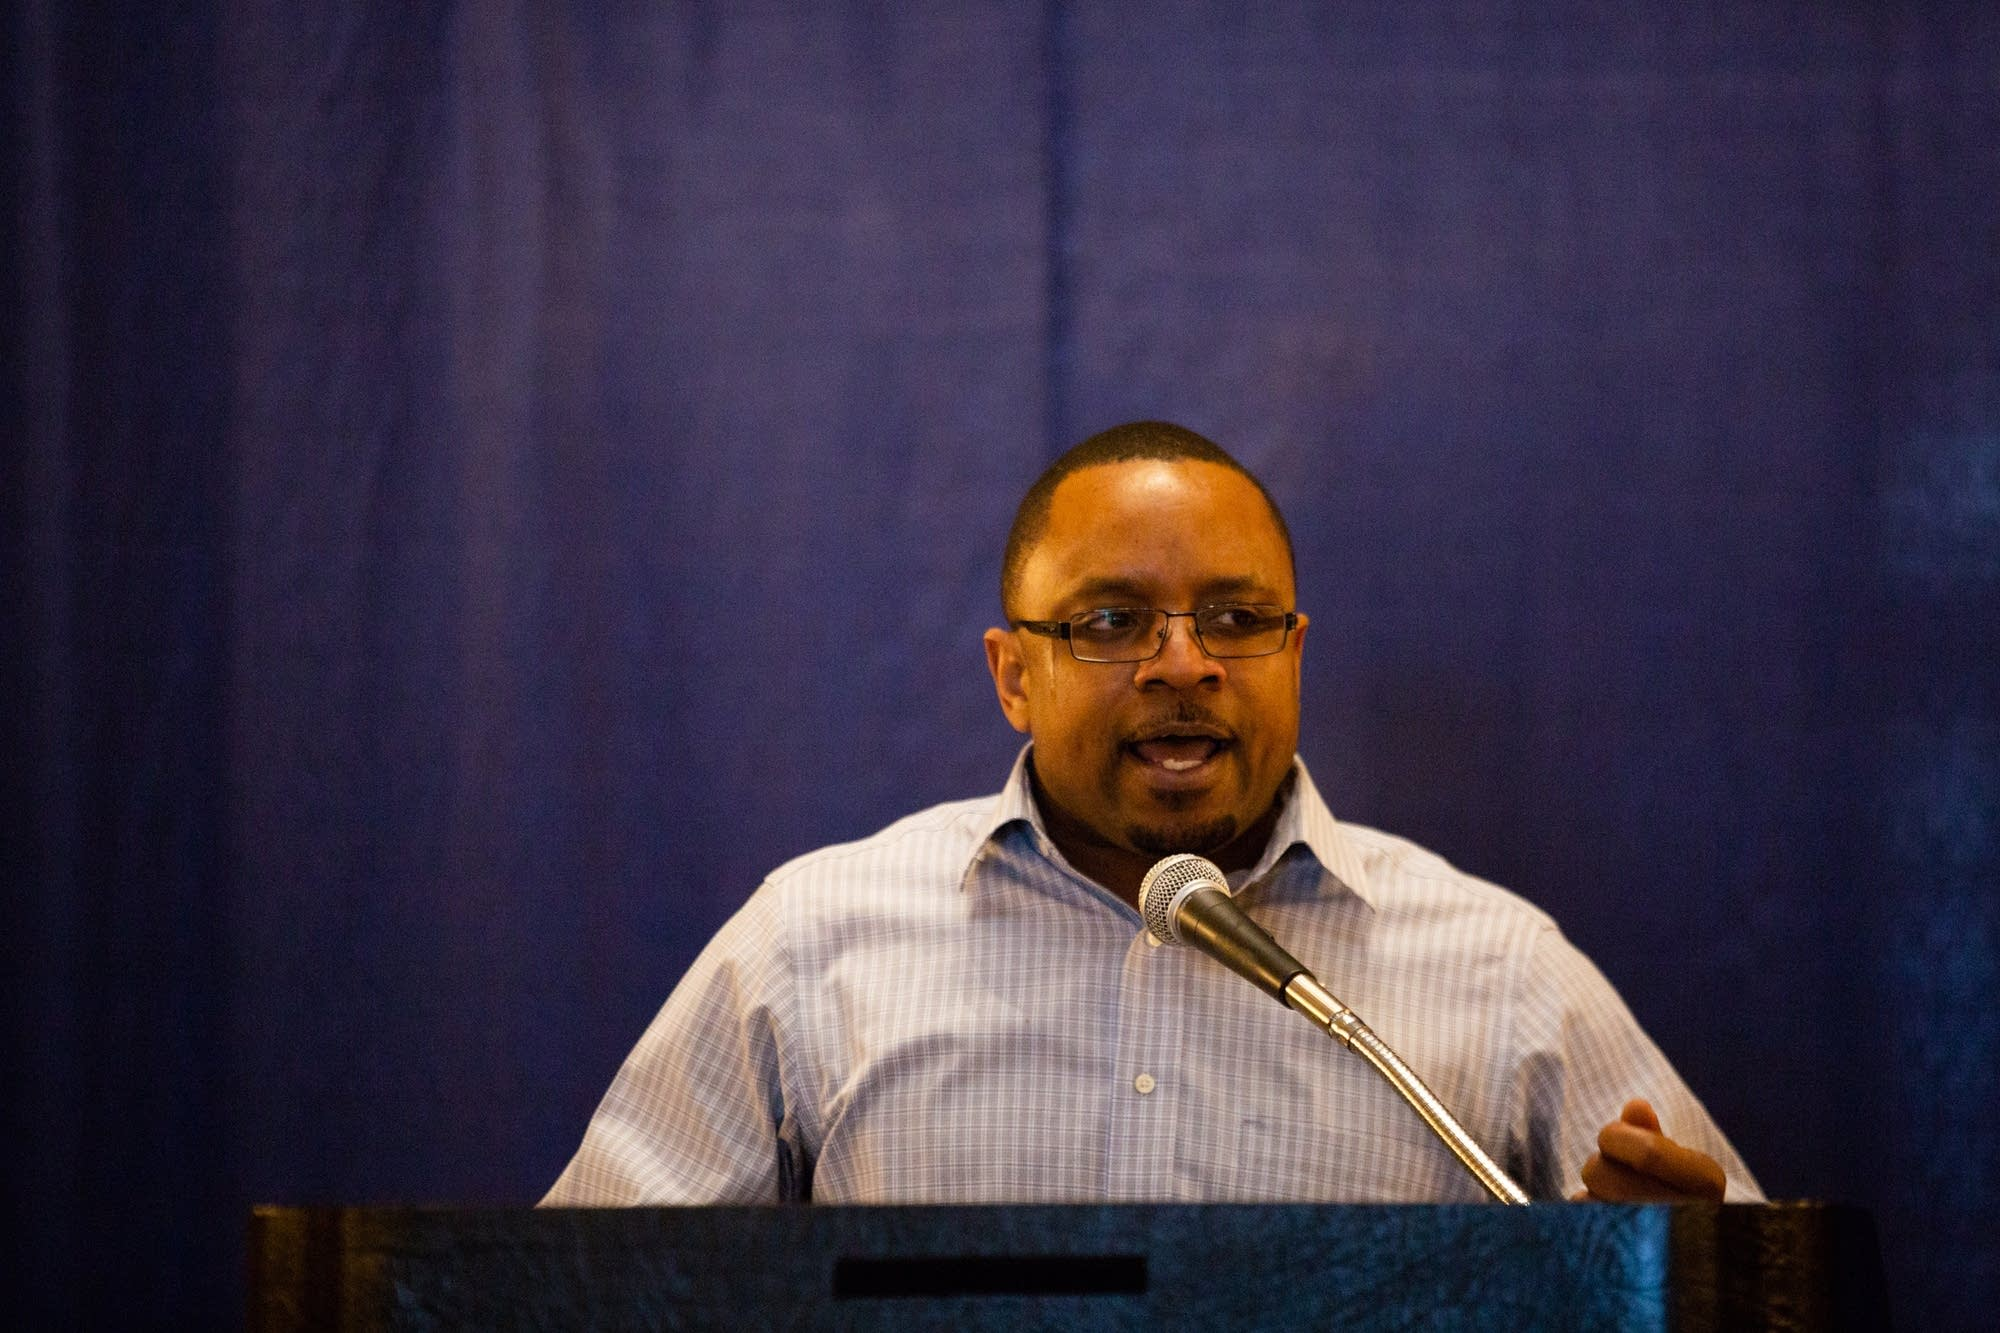 Terencio Safford speaks at a rally supporting voting rights of felons.